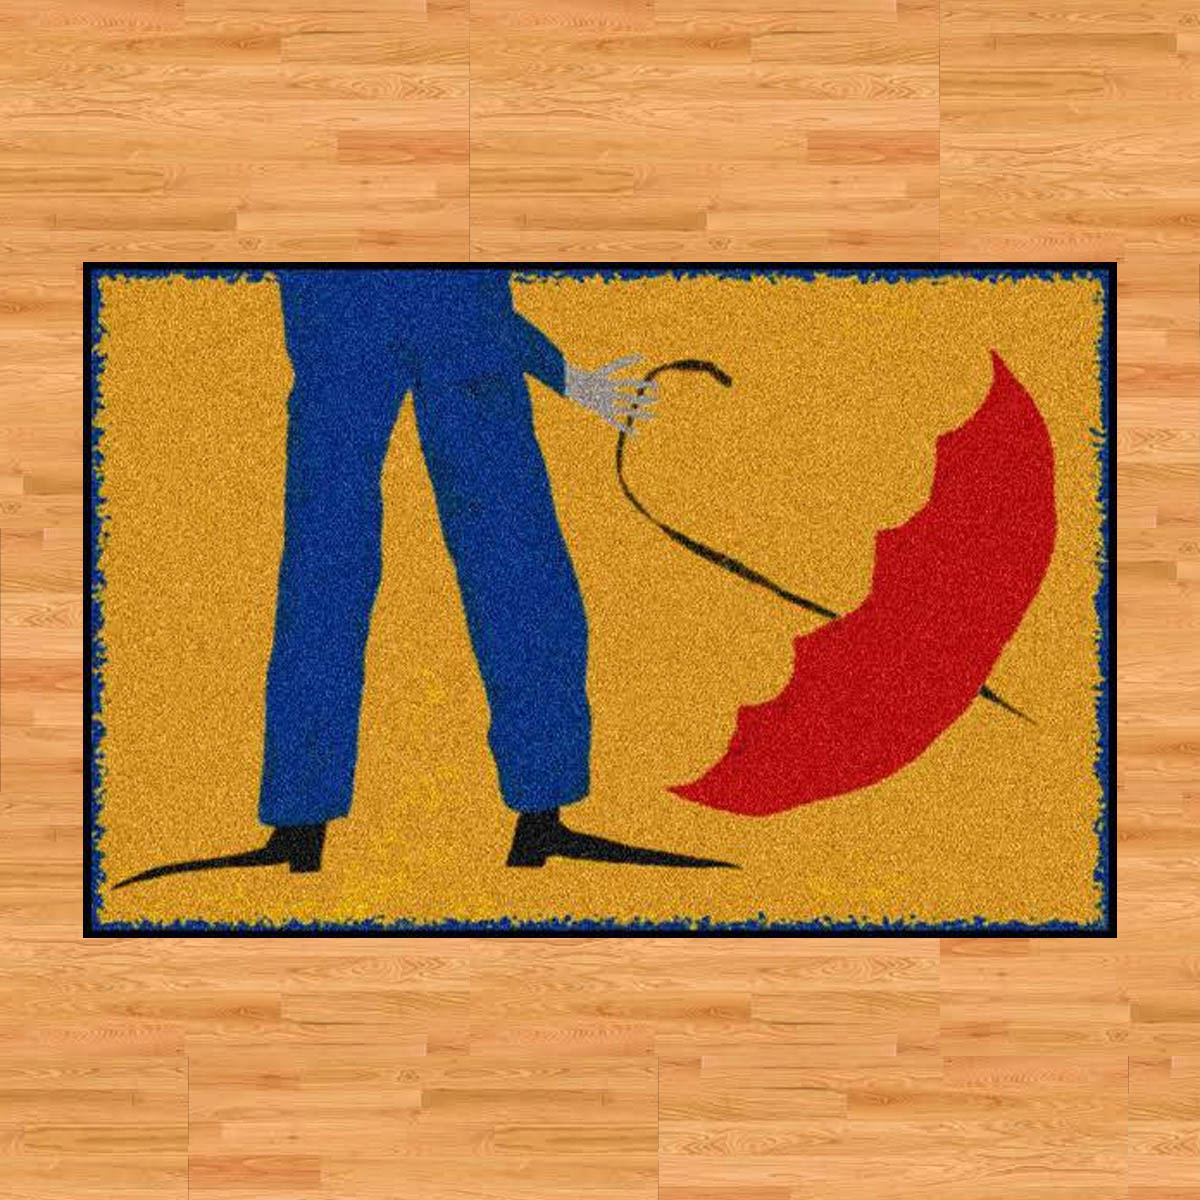 """David Milliken Rug - """"Invention Umbrella"""" is a 4'x6' rubber backed mat designed by David Milliken. Part of his """"Whimsical"""" collection, this rug is certainly just that.Retail Value: $272.00"""